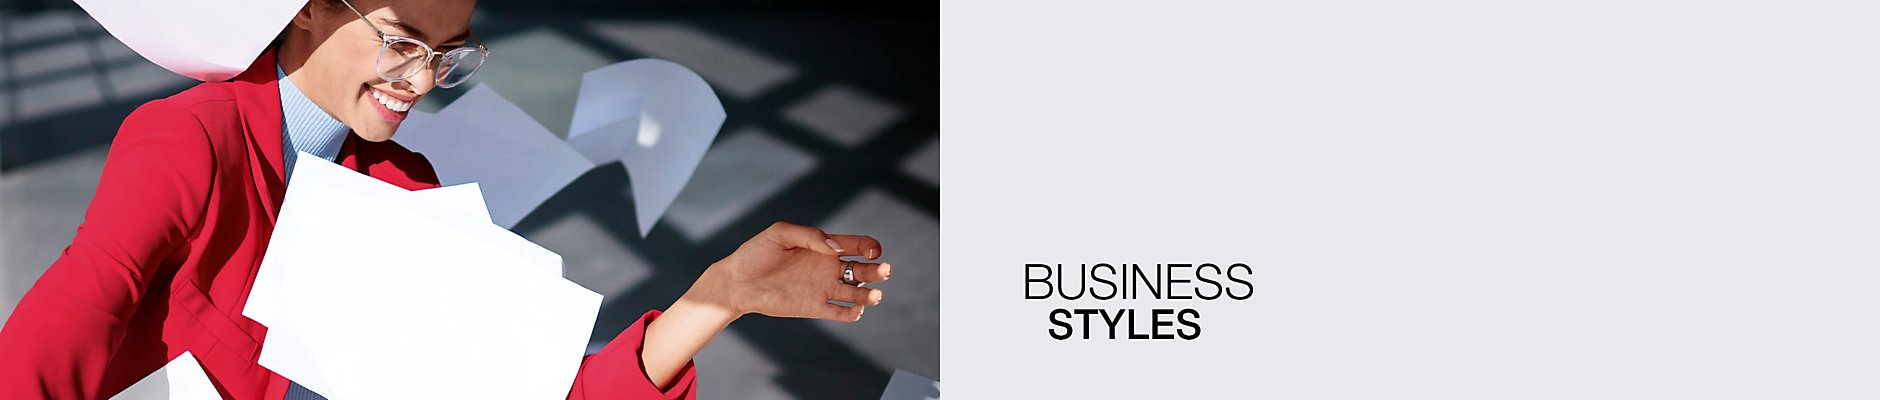 Top Business Styles